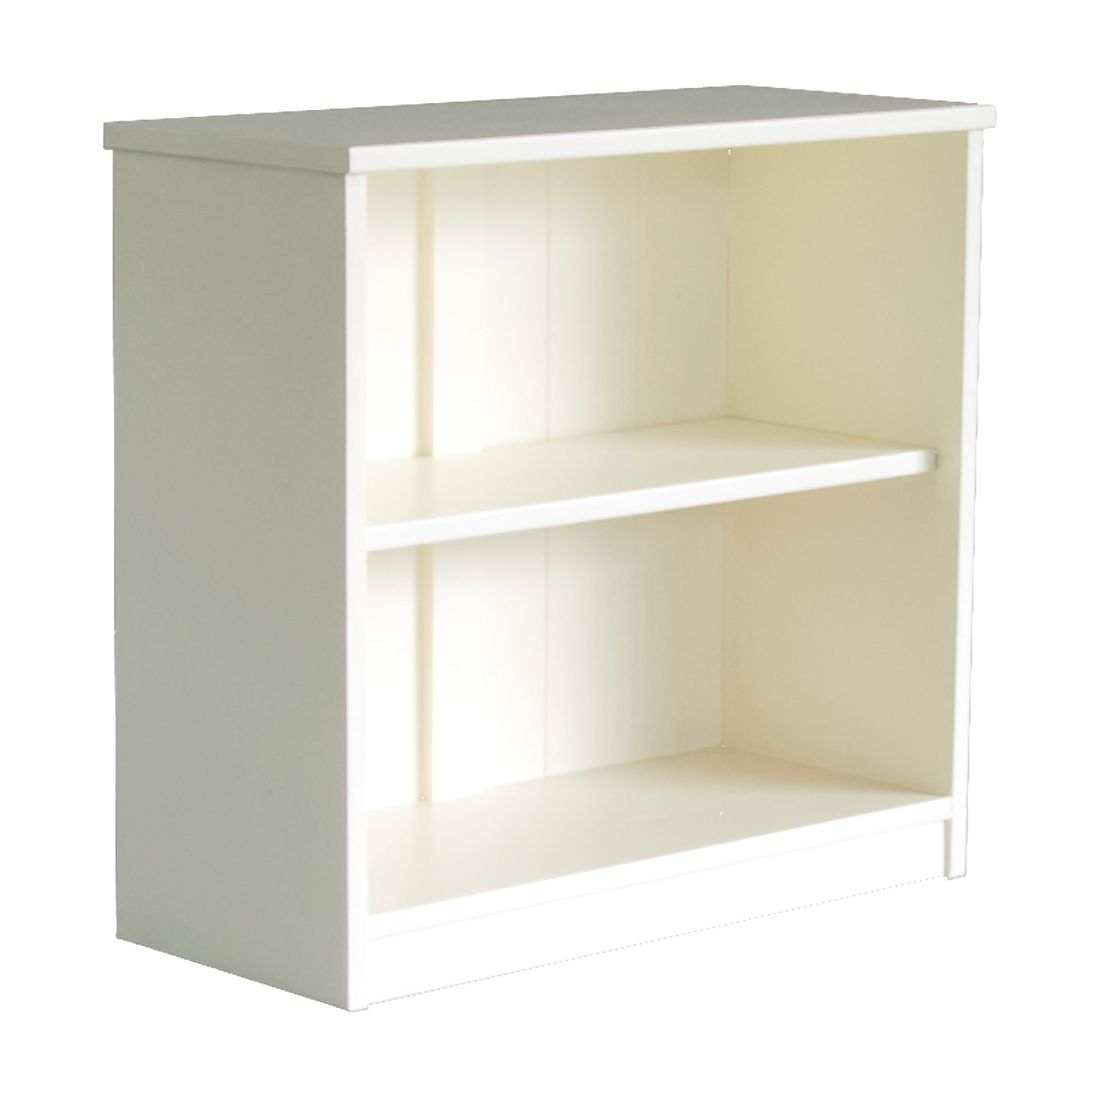 Fargo Storage Bookcase Ivory White By Little Folks For